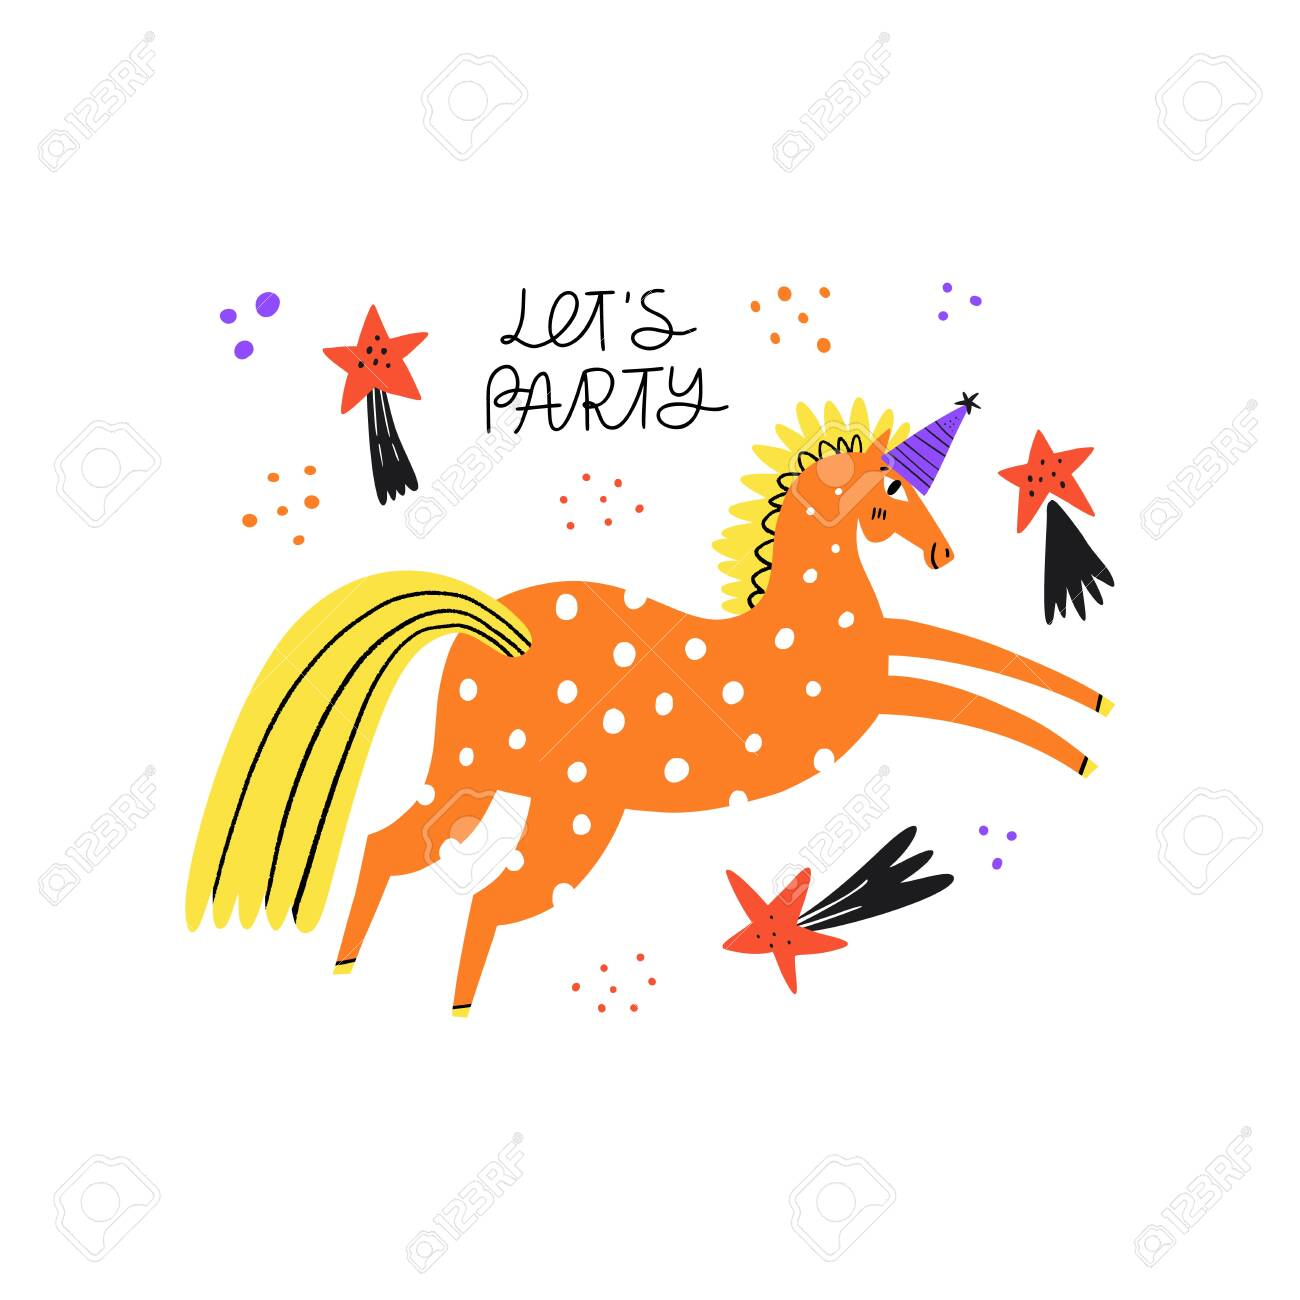 Horse In Cap For Party Funny Stallion Galloping Jumping Vaulting Royalty Free Cliparts Vectors And Stock Illustration Image 140394646